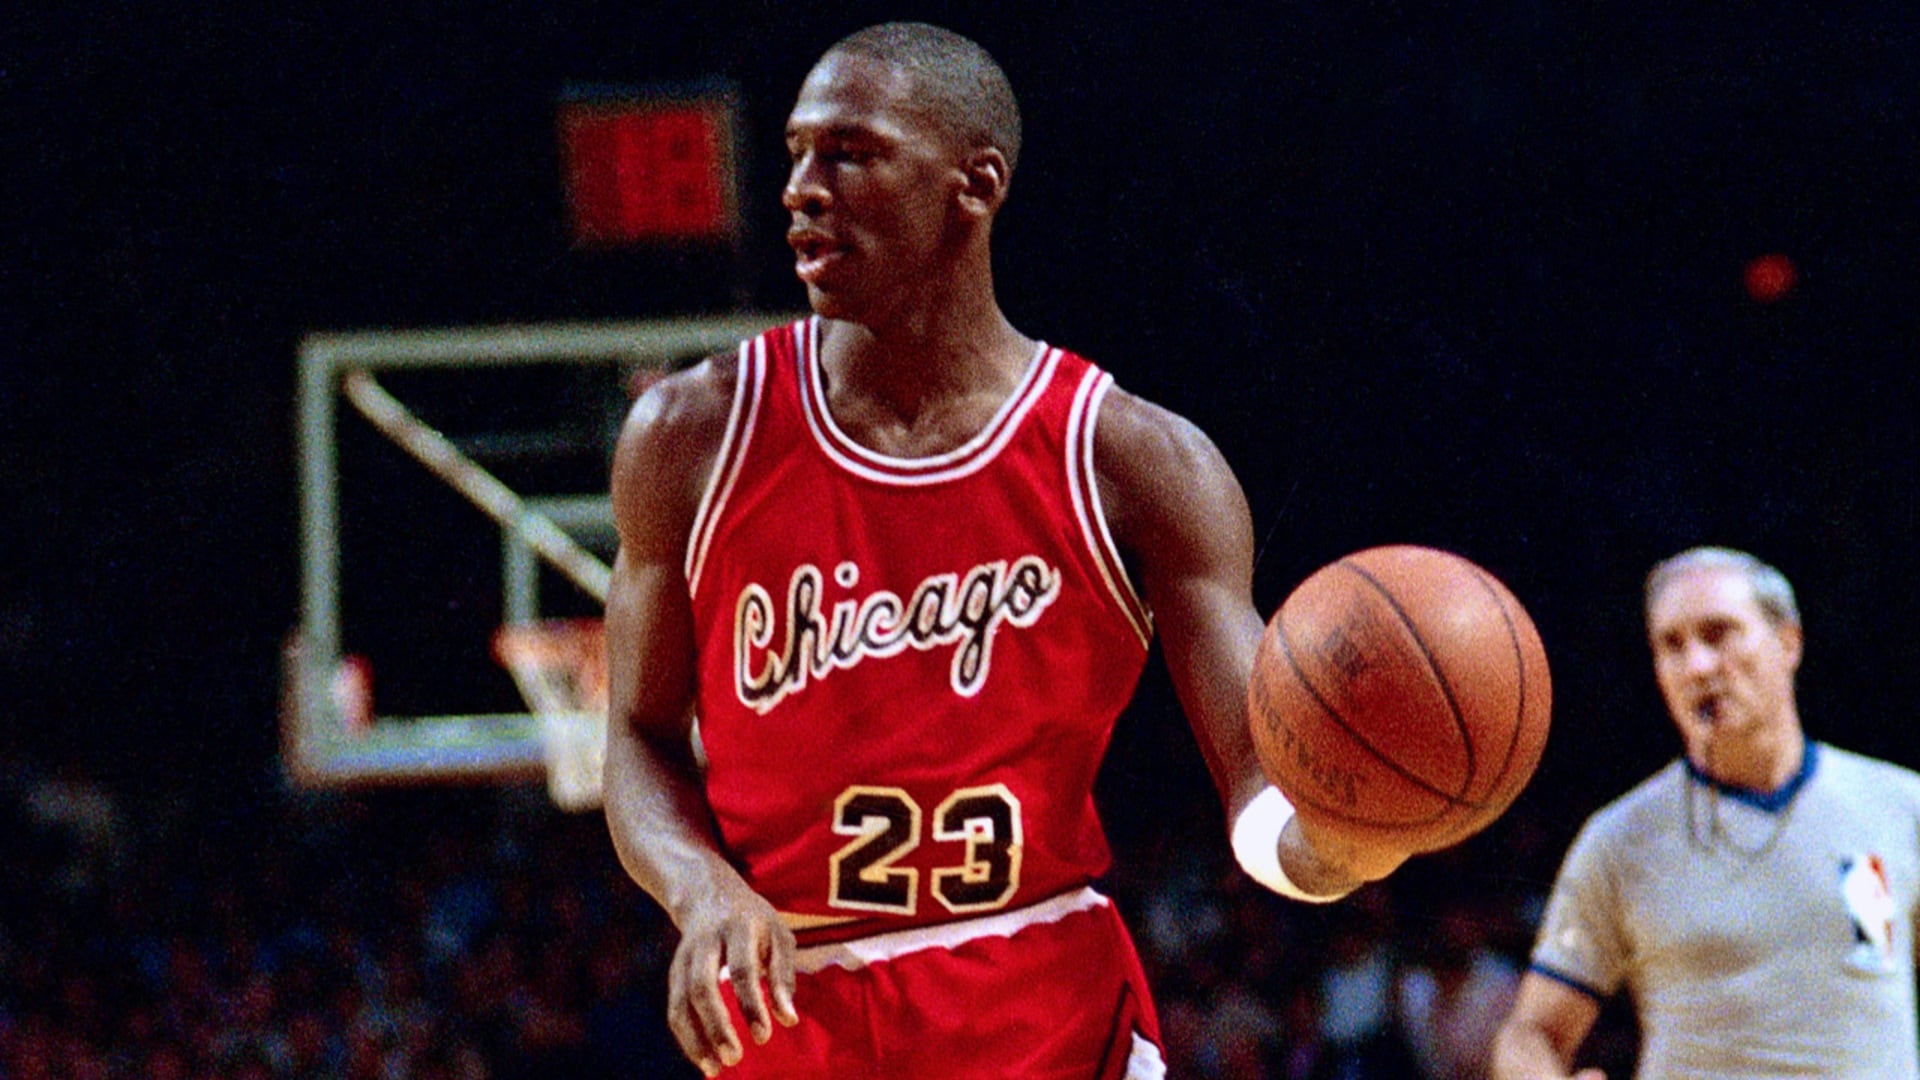 On This Date: Michael Jordan's First Playoff Game | 4.19.85